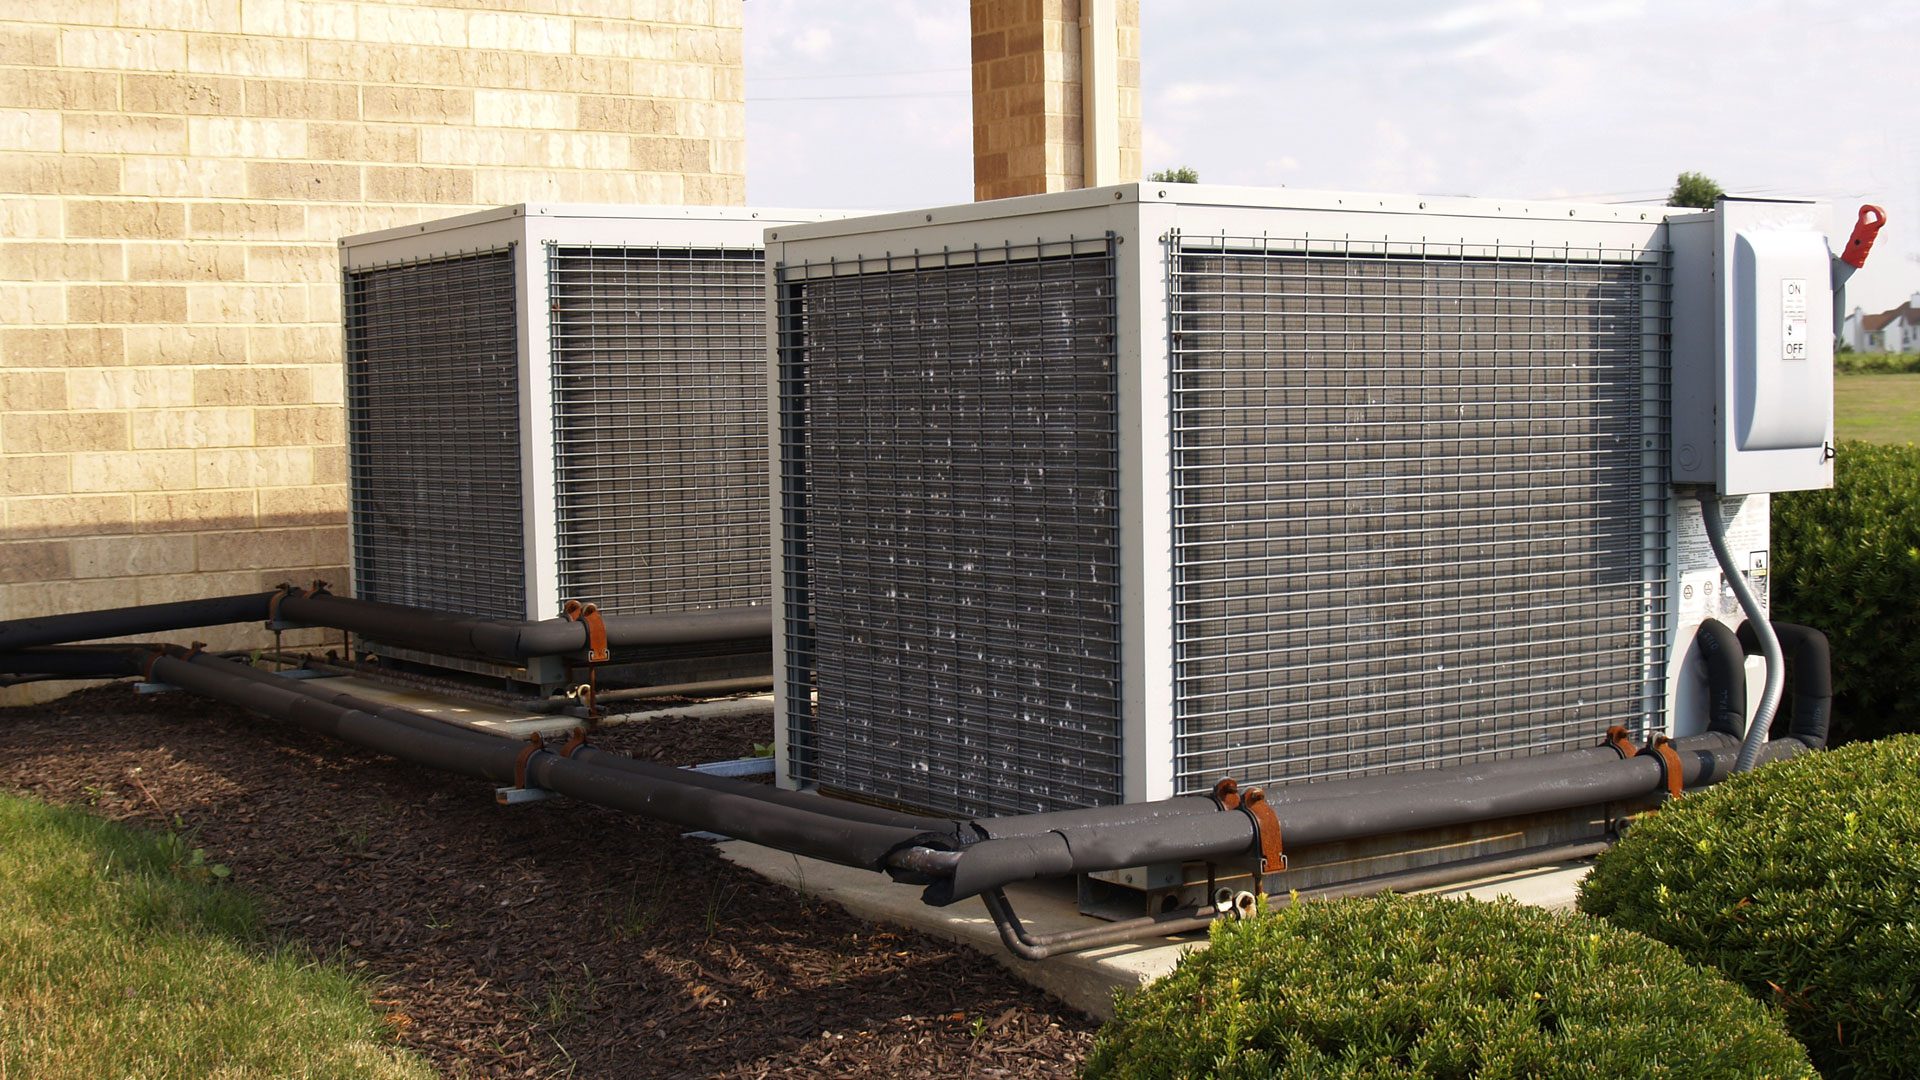 Kingston Residential HVAC